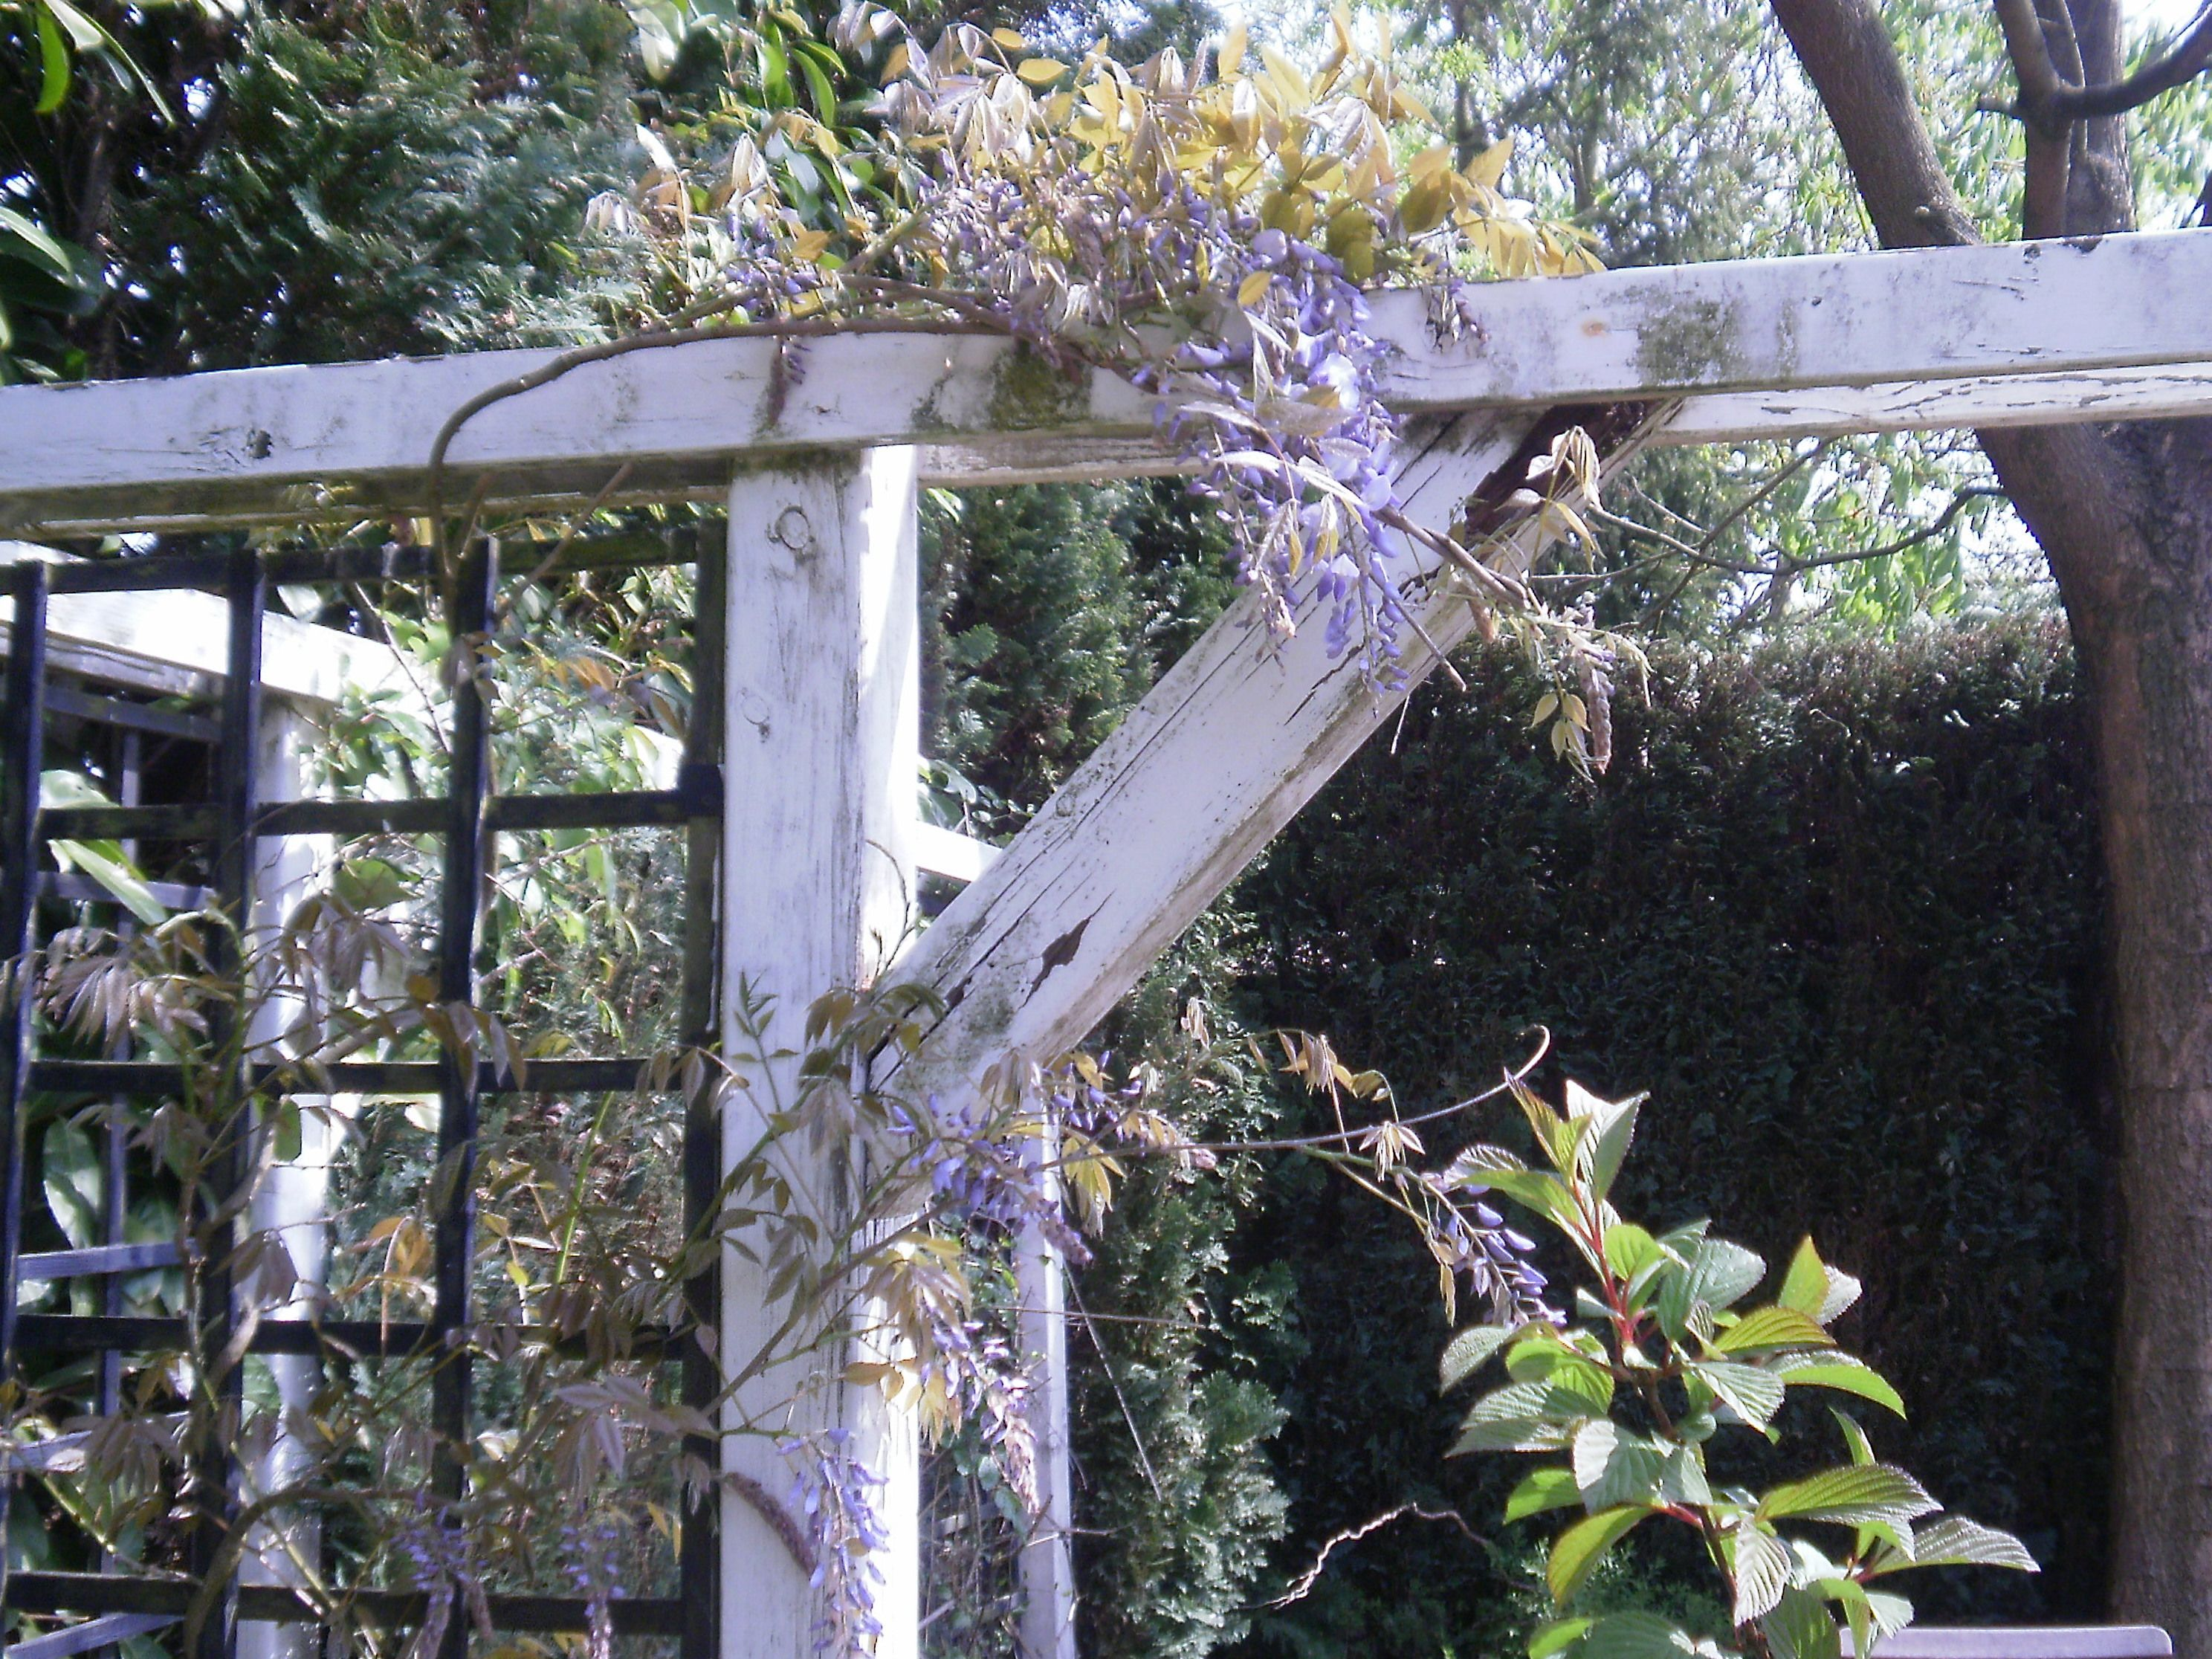 Wisteria (we planted the Wisteria in 1991 and in 2010 we saw the first flowers!)